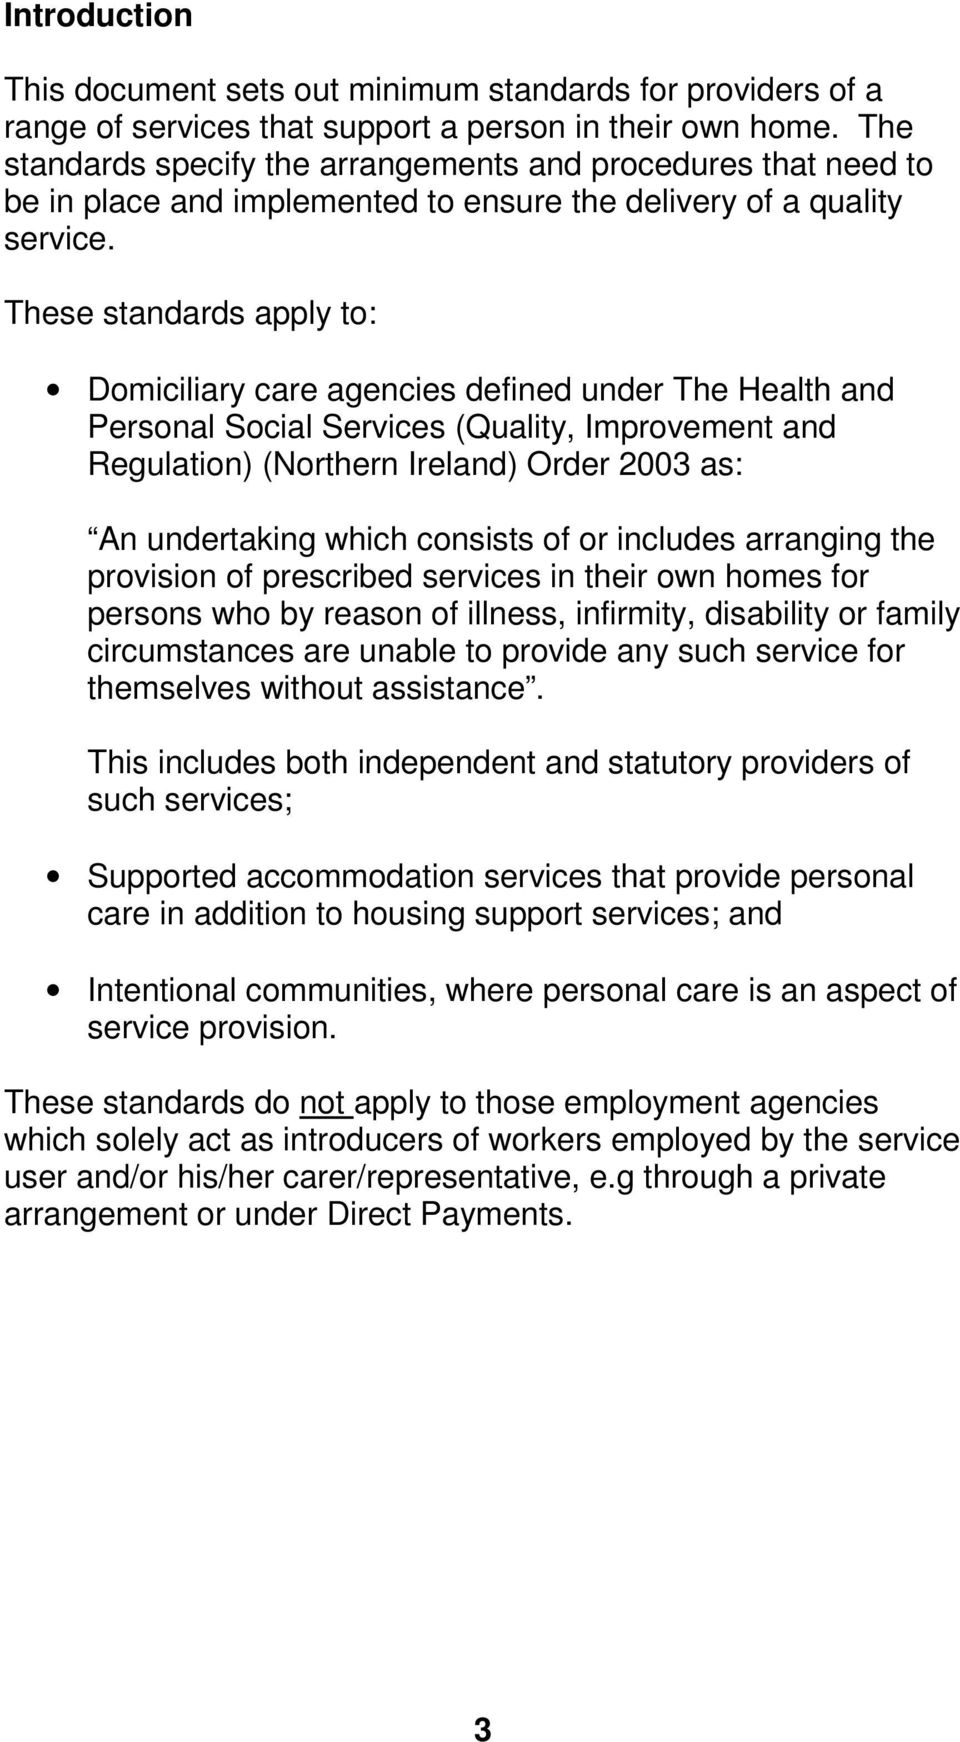 These standards apply to: Domiciliary care agencies defined under The Health and Personal Social Services (Quality, Improvement and Regulation) (Northern Ireland) Order 2003 as: An undertaking which